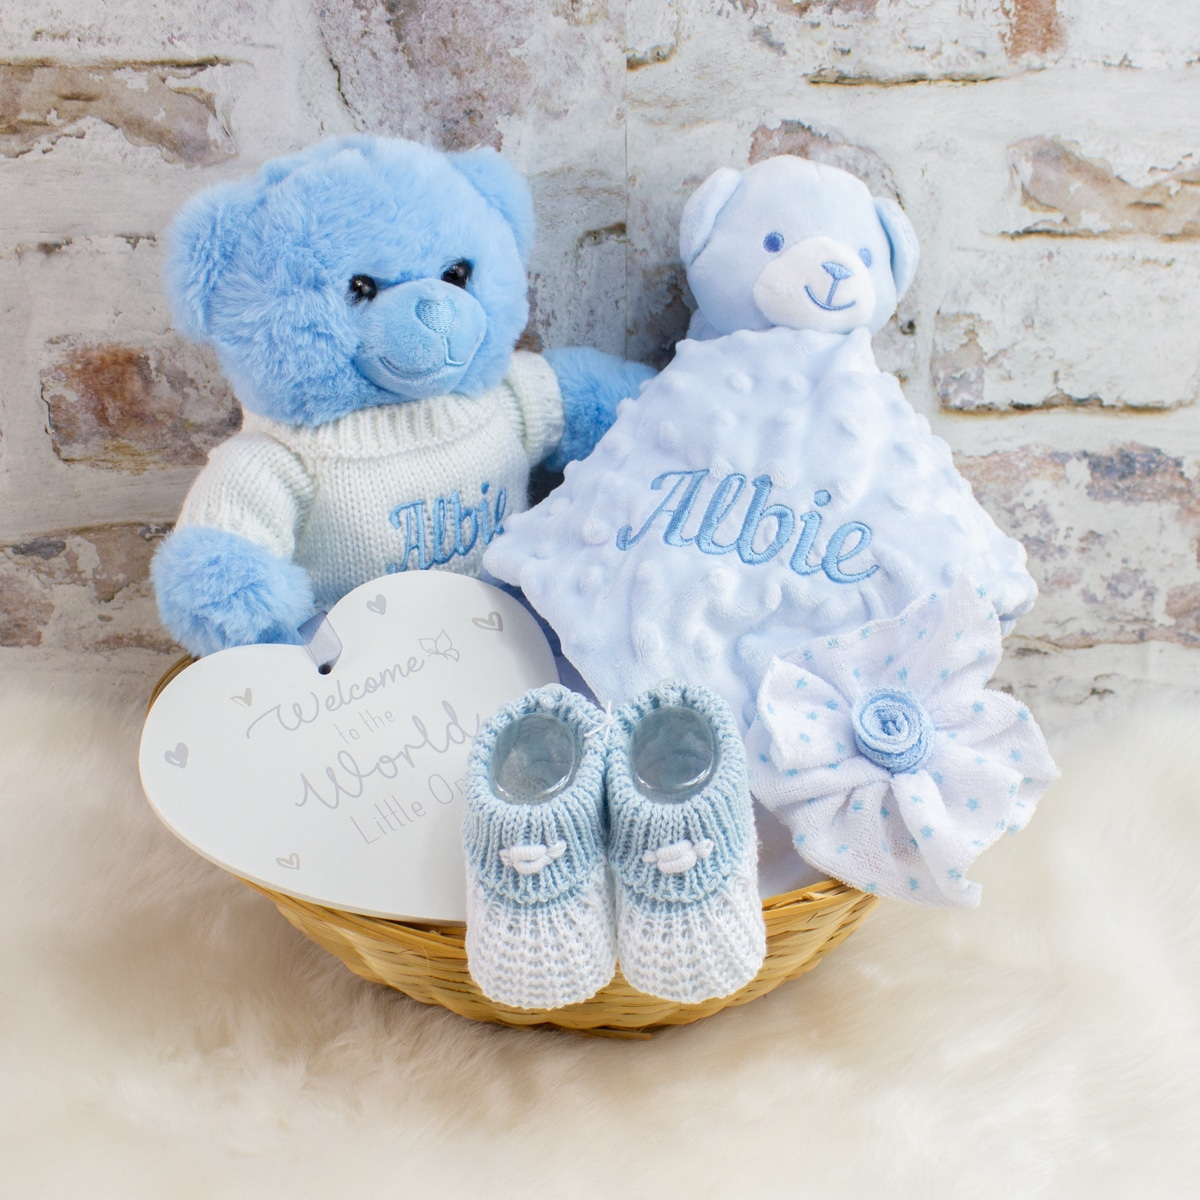 Personalised Baby Boy Teddy Bear Gift Basket